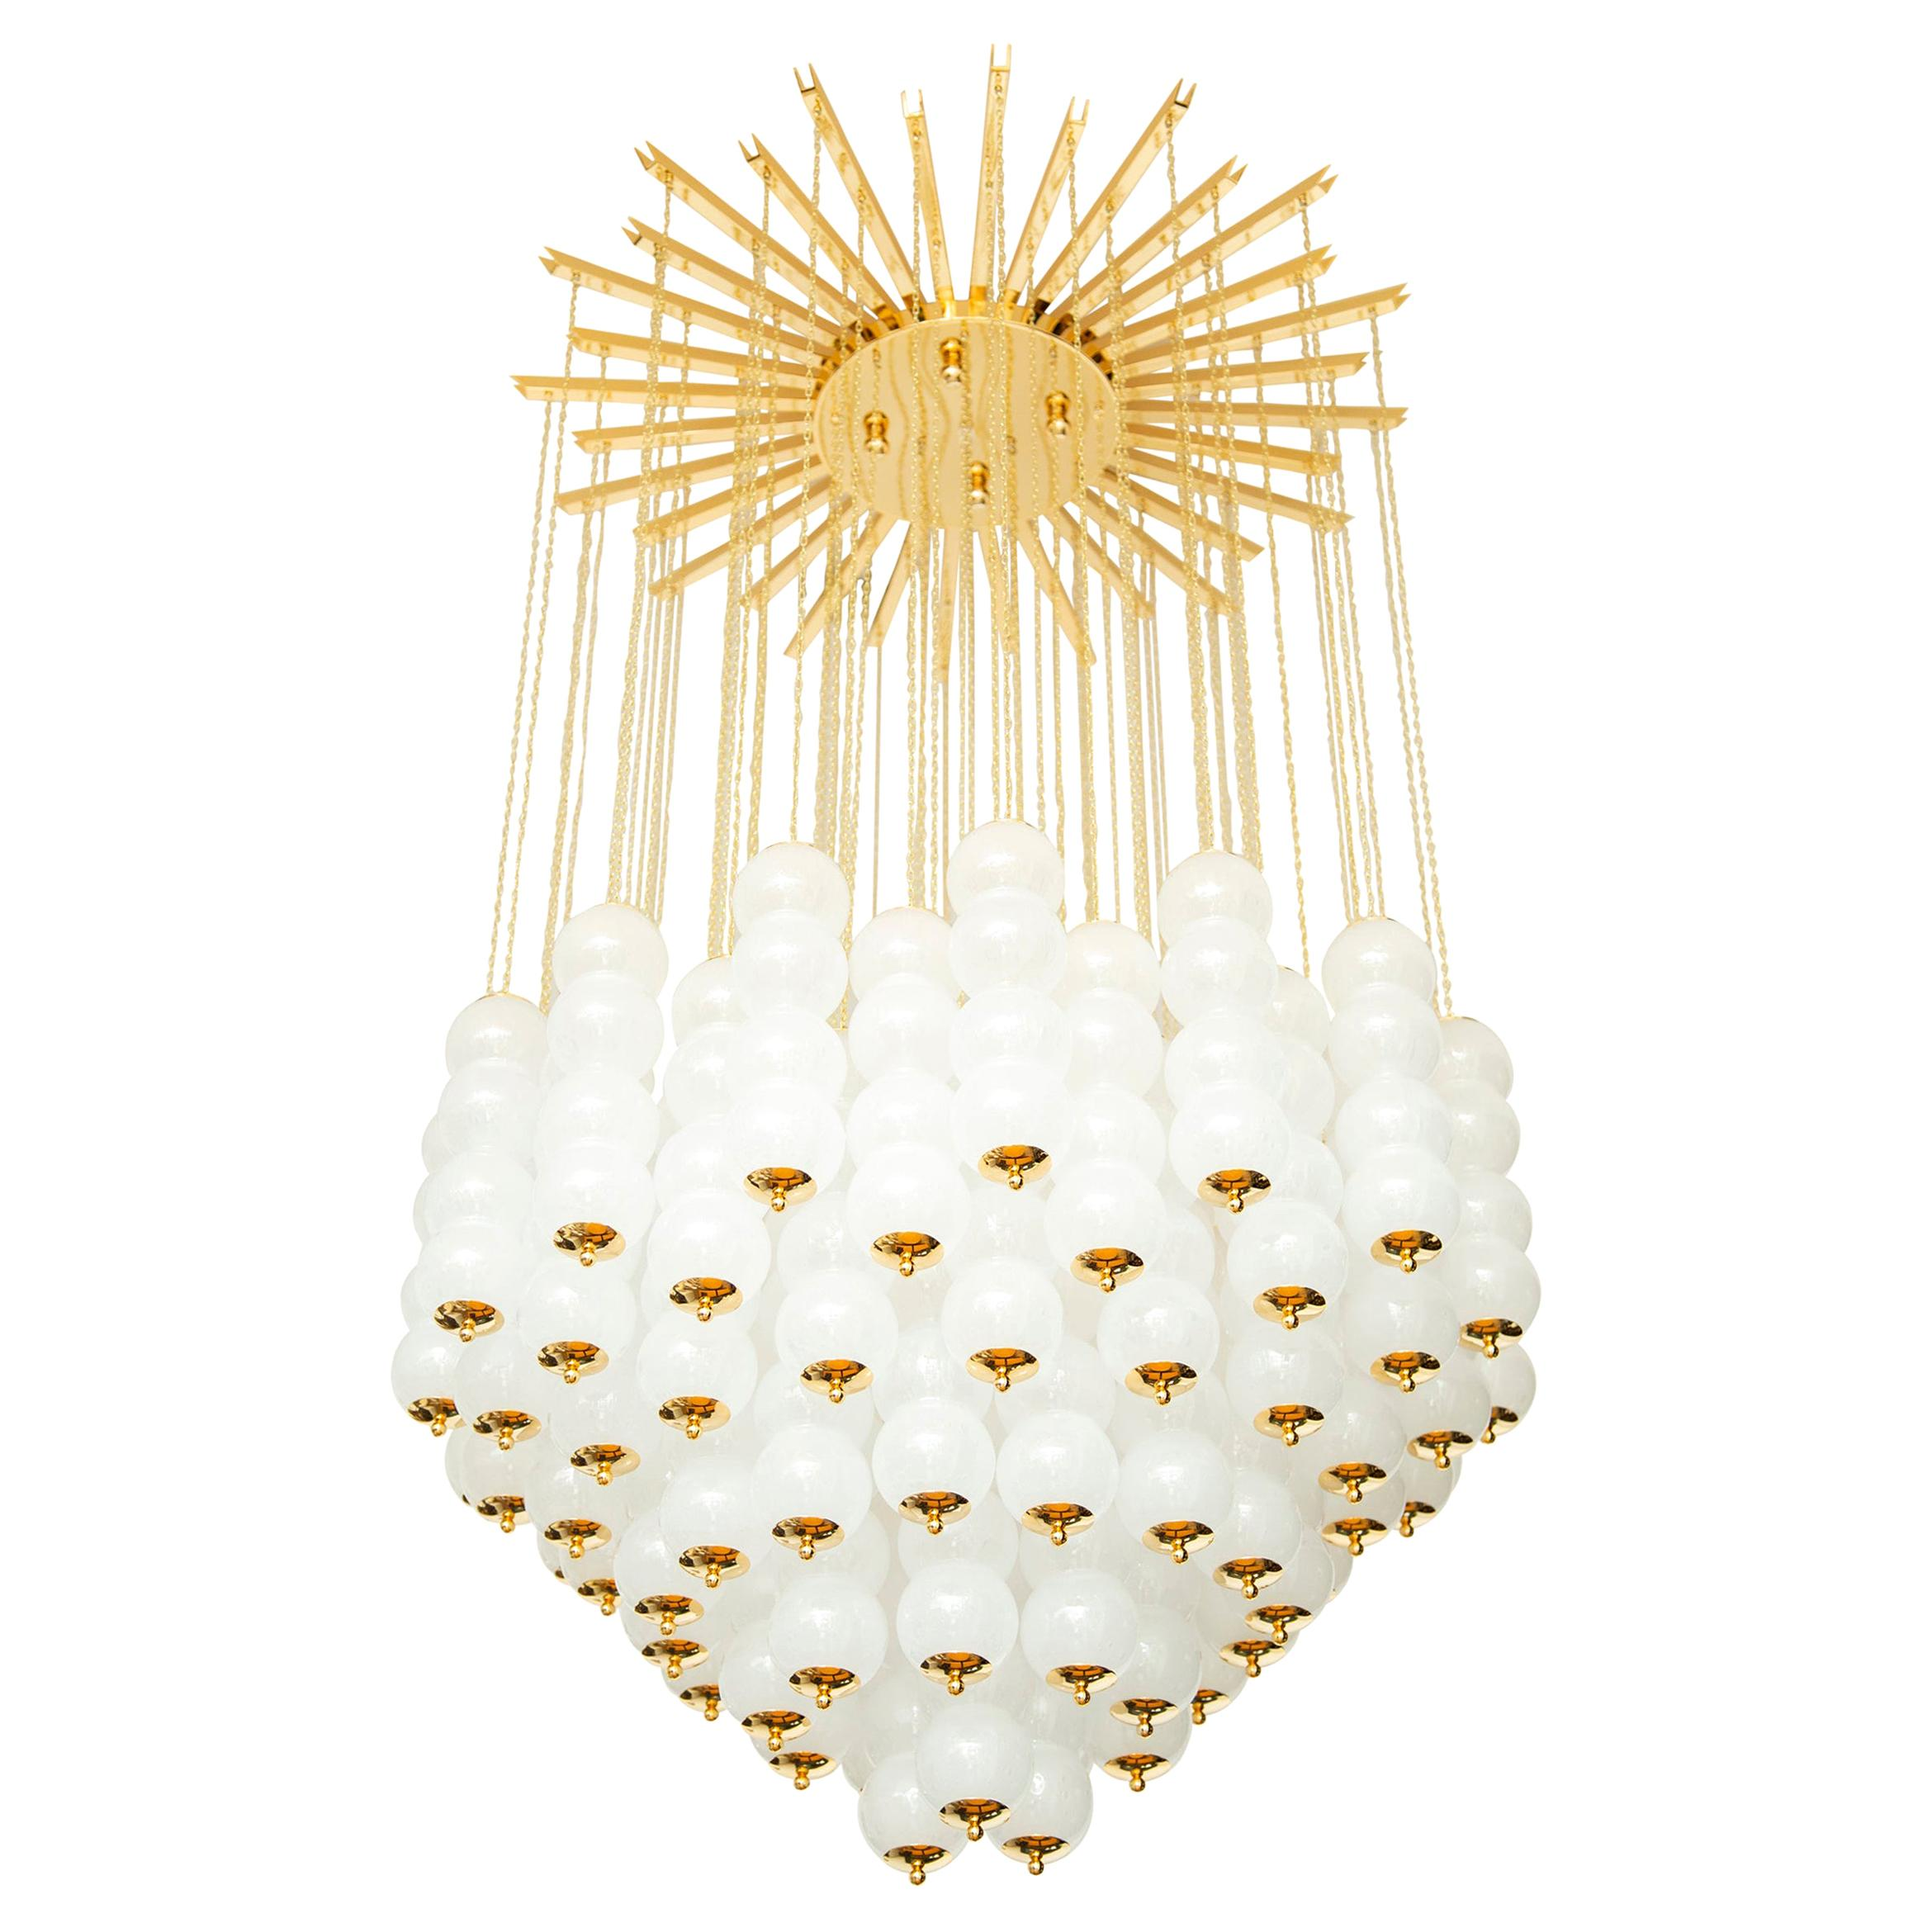 Flushmount Conical Murano White Glass and Brass Ceiling Light